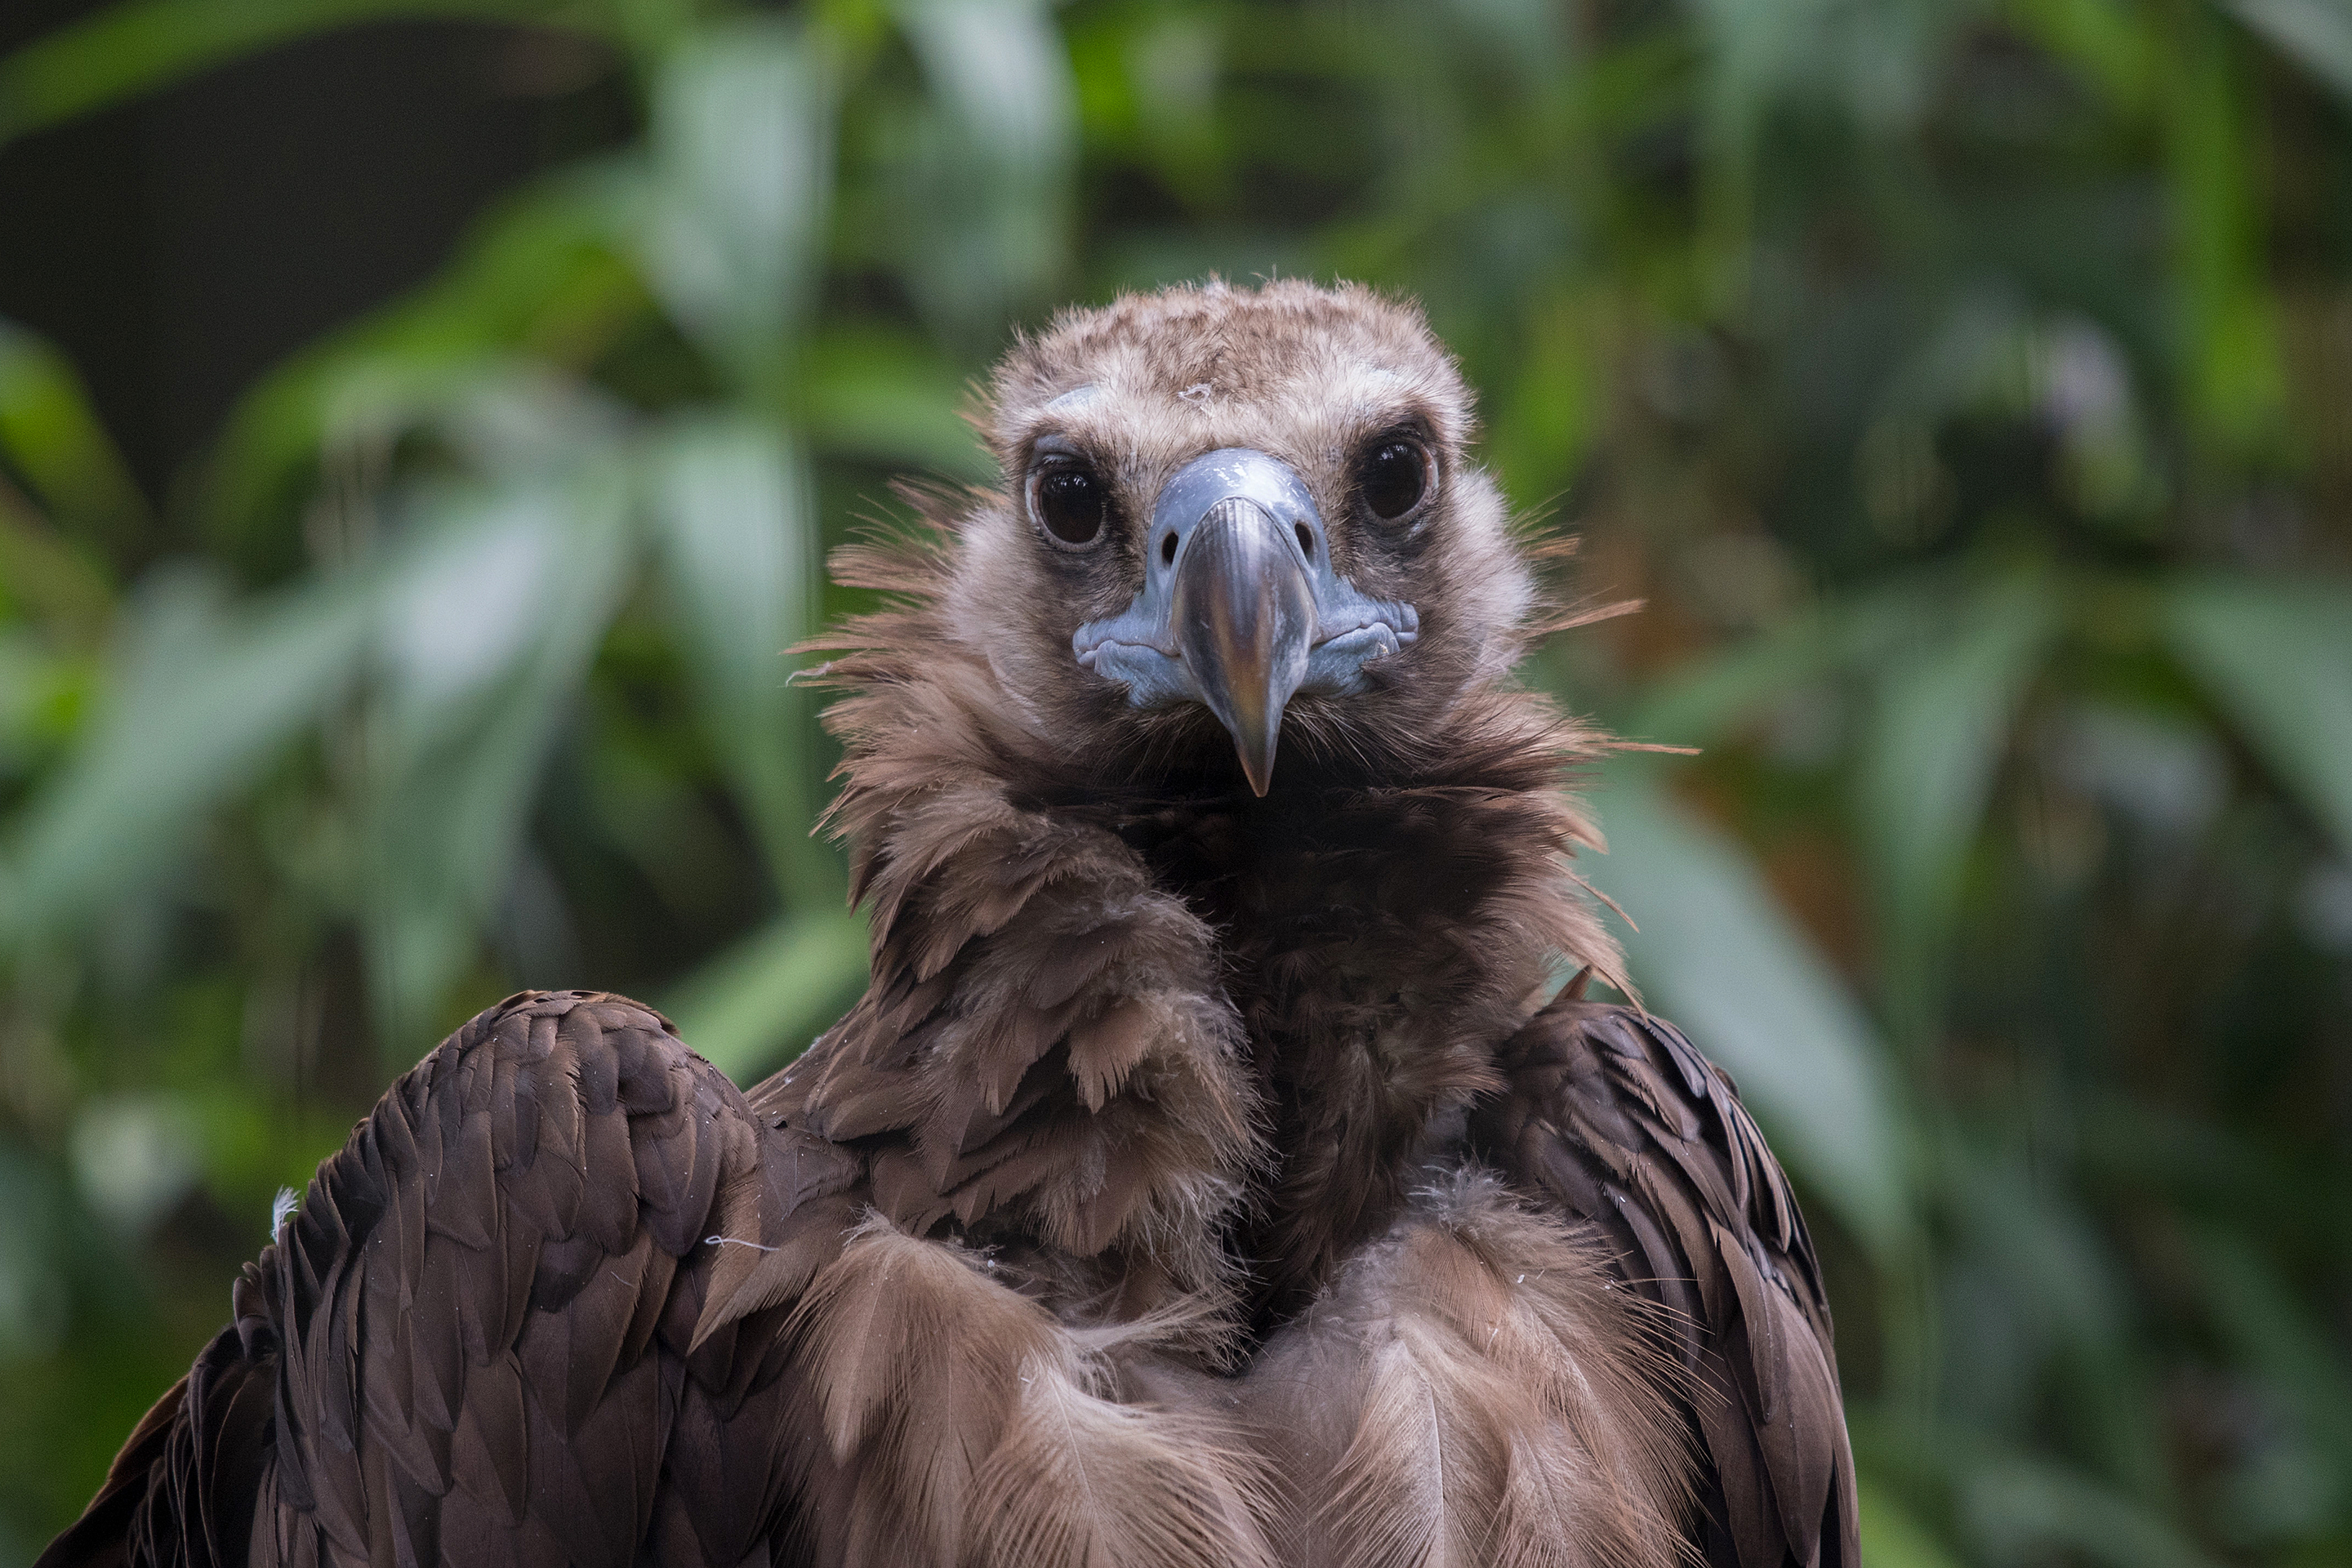 It's International Vulture Awareness Day